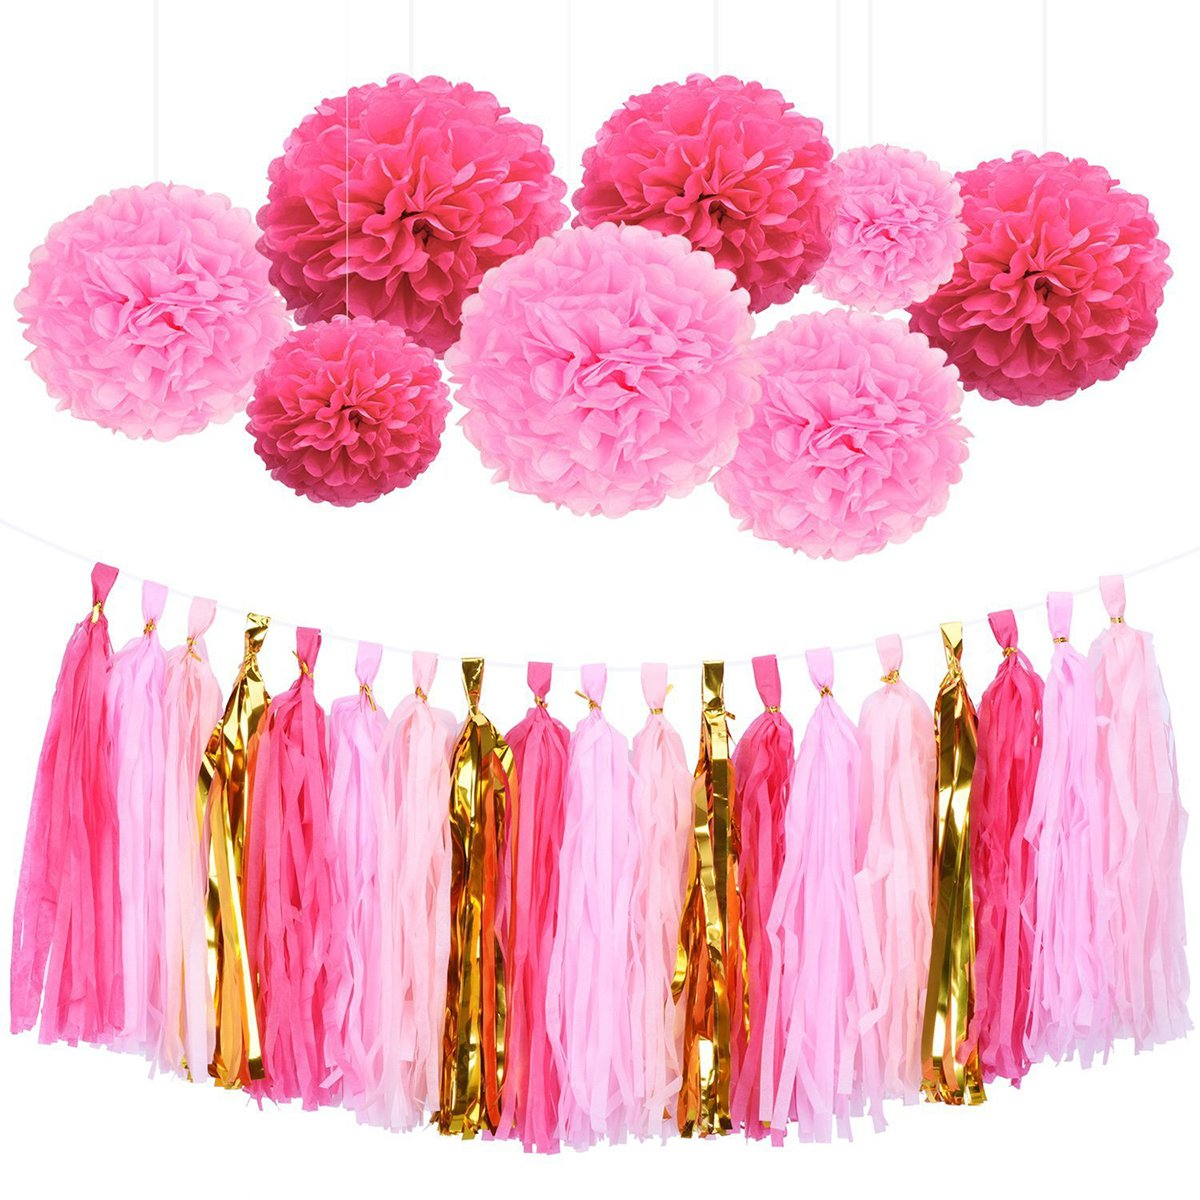 TOYMYTOY 28Pcs Tissue Paper Flowers Pom Pom Tassel DIY Paper Garland for Wedding Party Decoration (Rose Red and Pink)